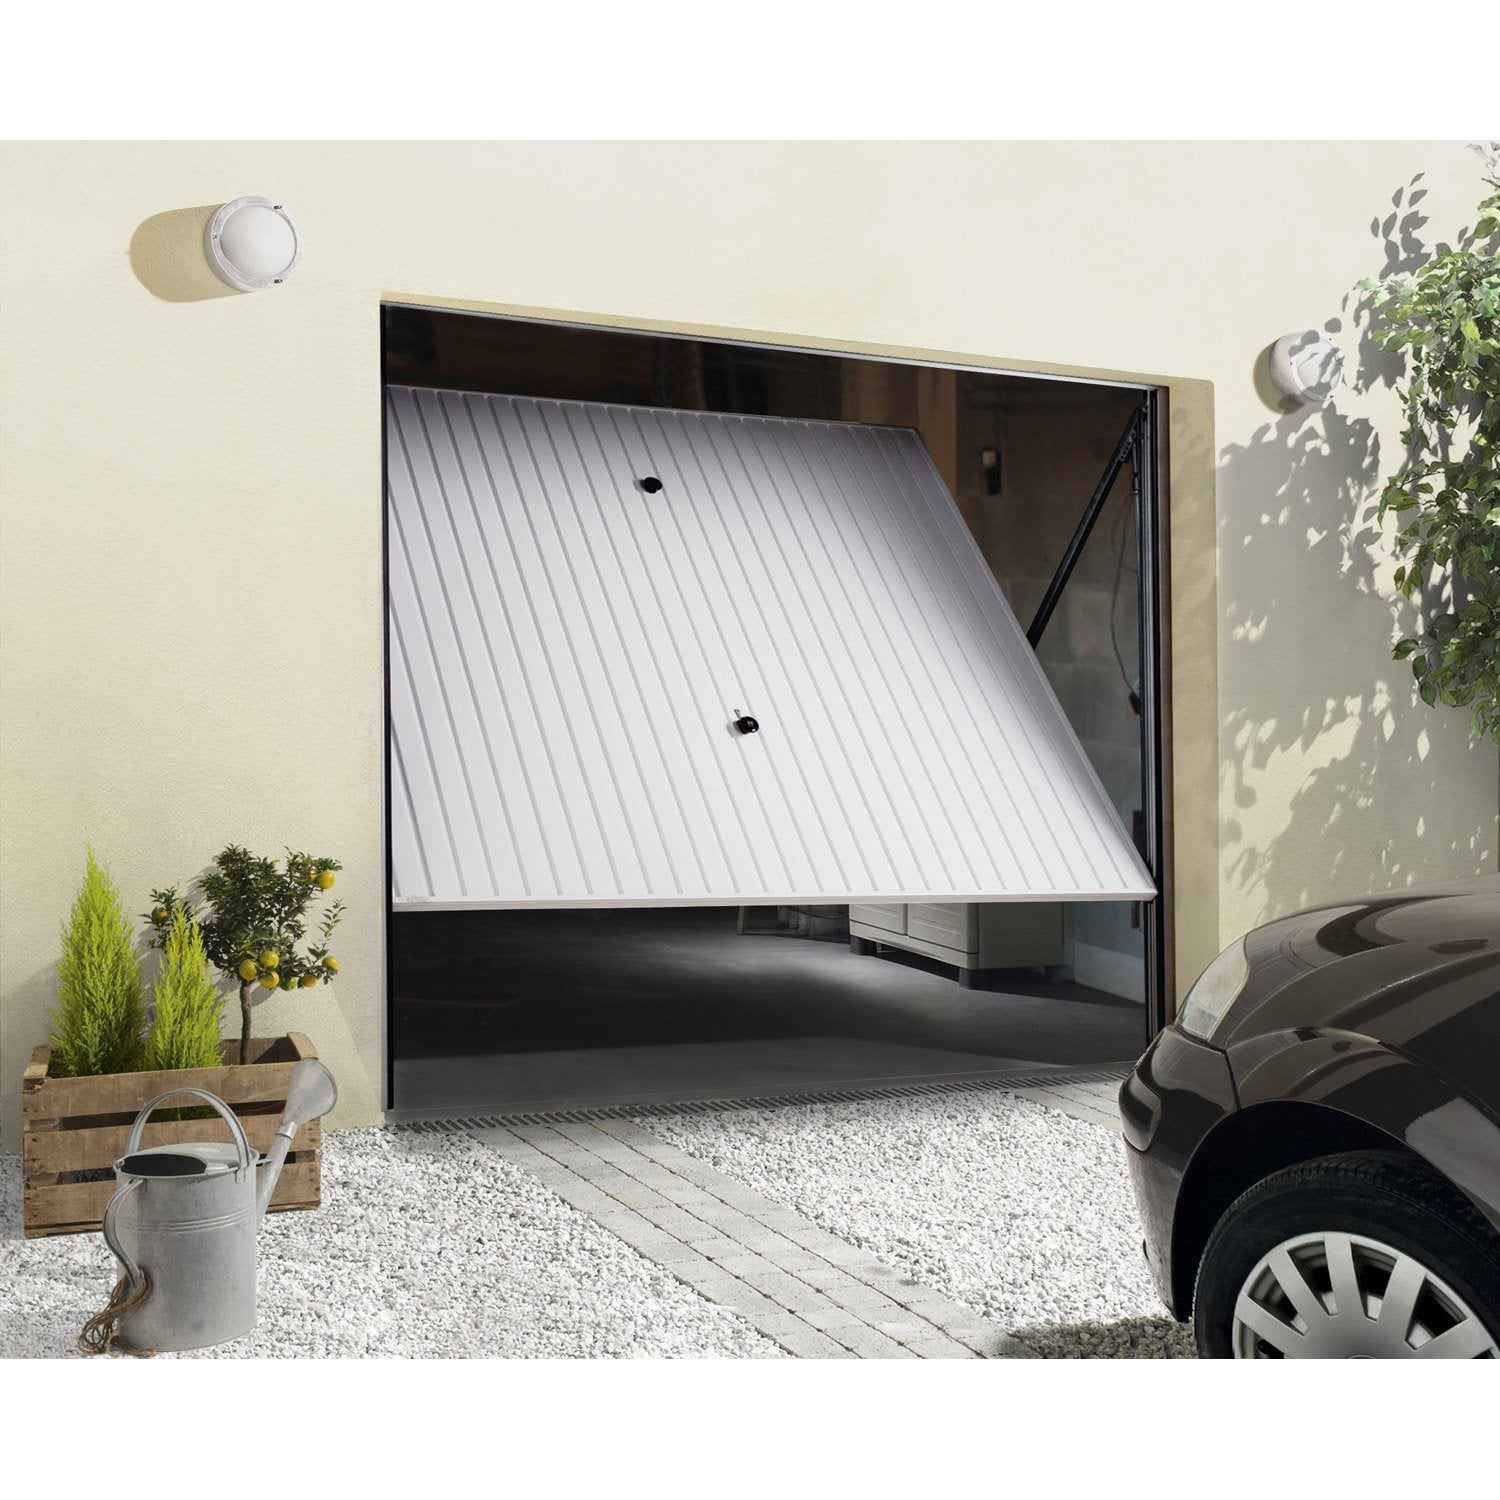 Porte de garage basculante manuelle x cm for Porte de garage sectionnelle 220 x 200